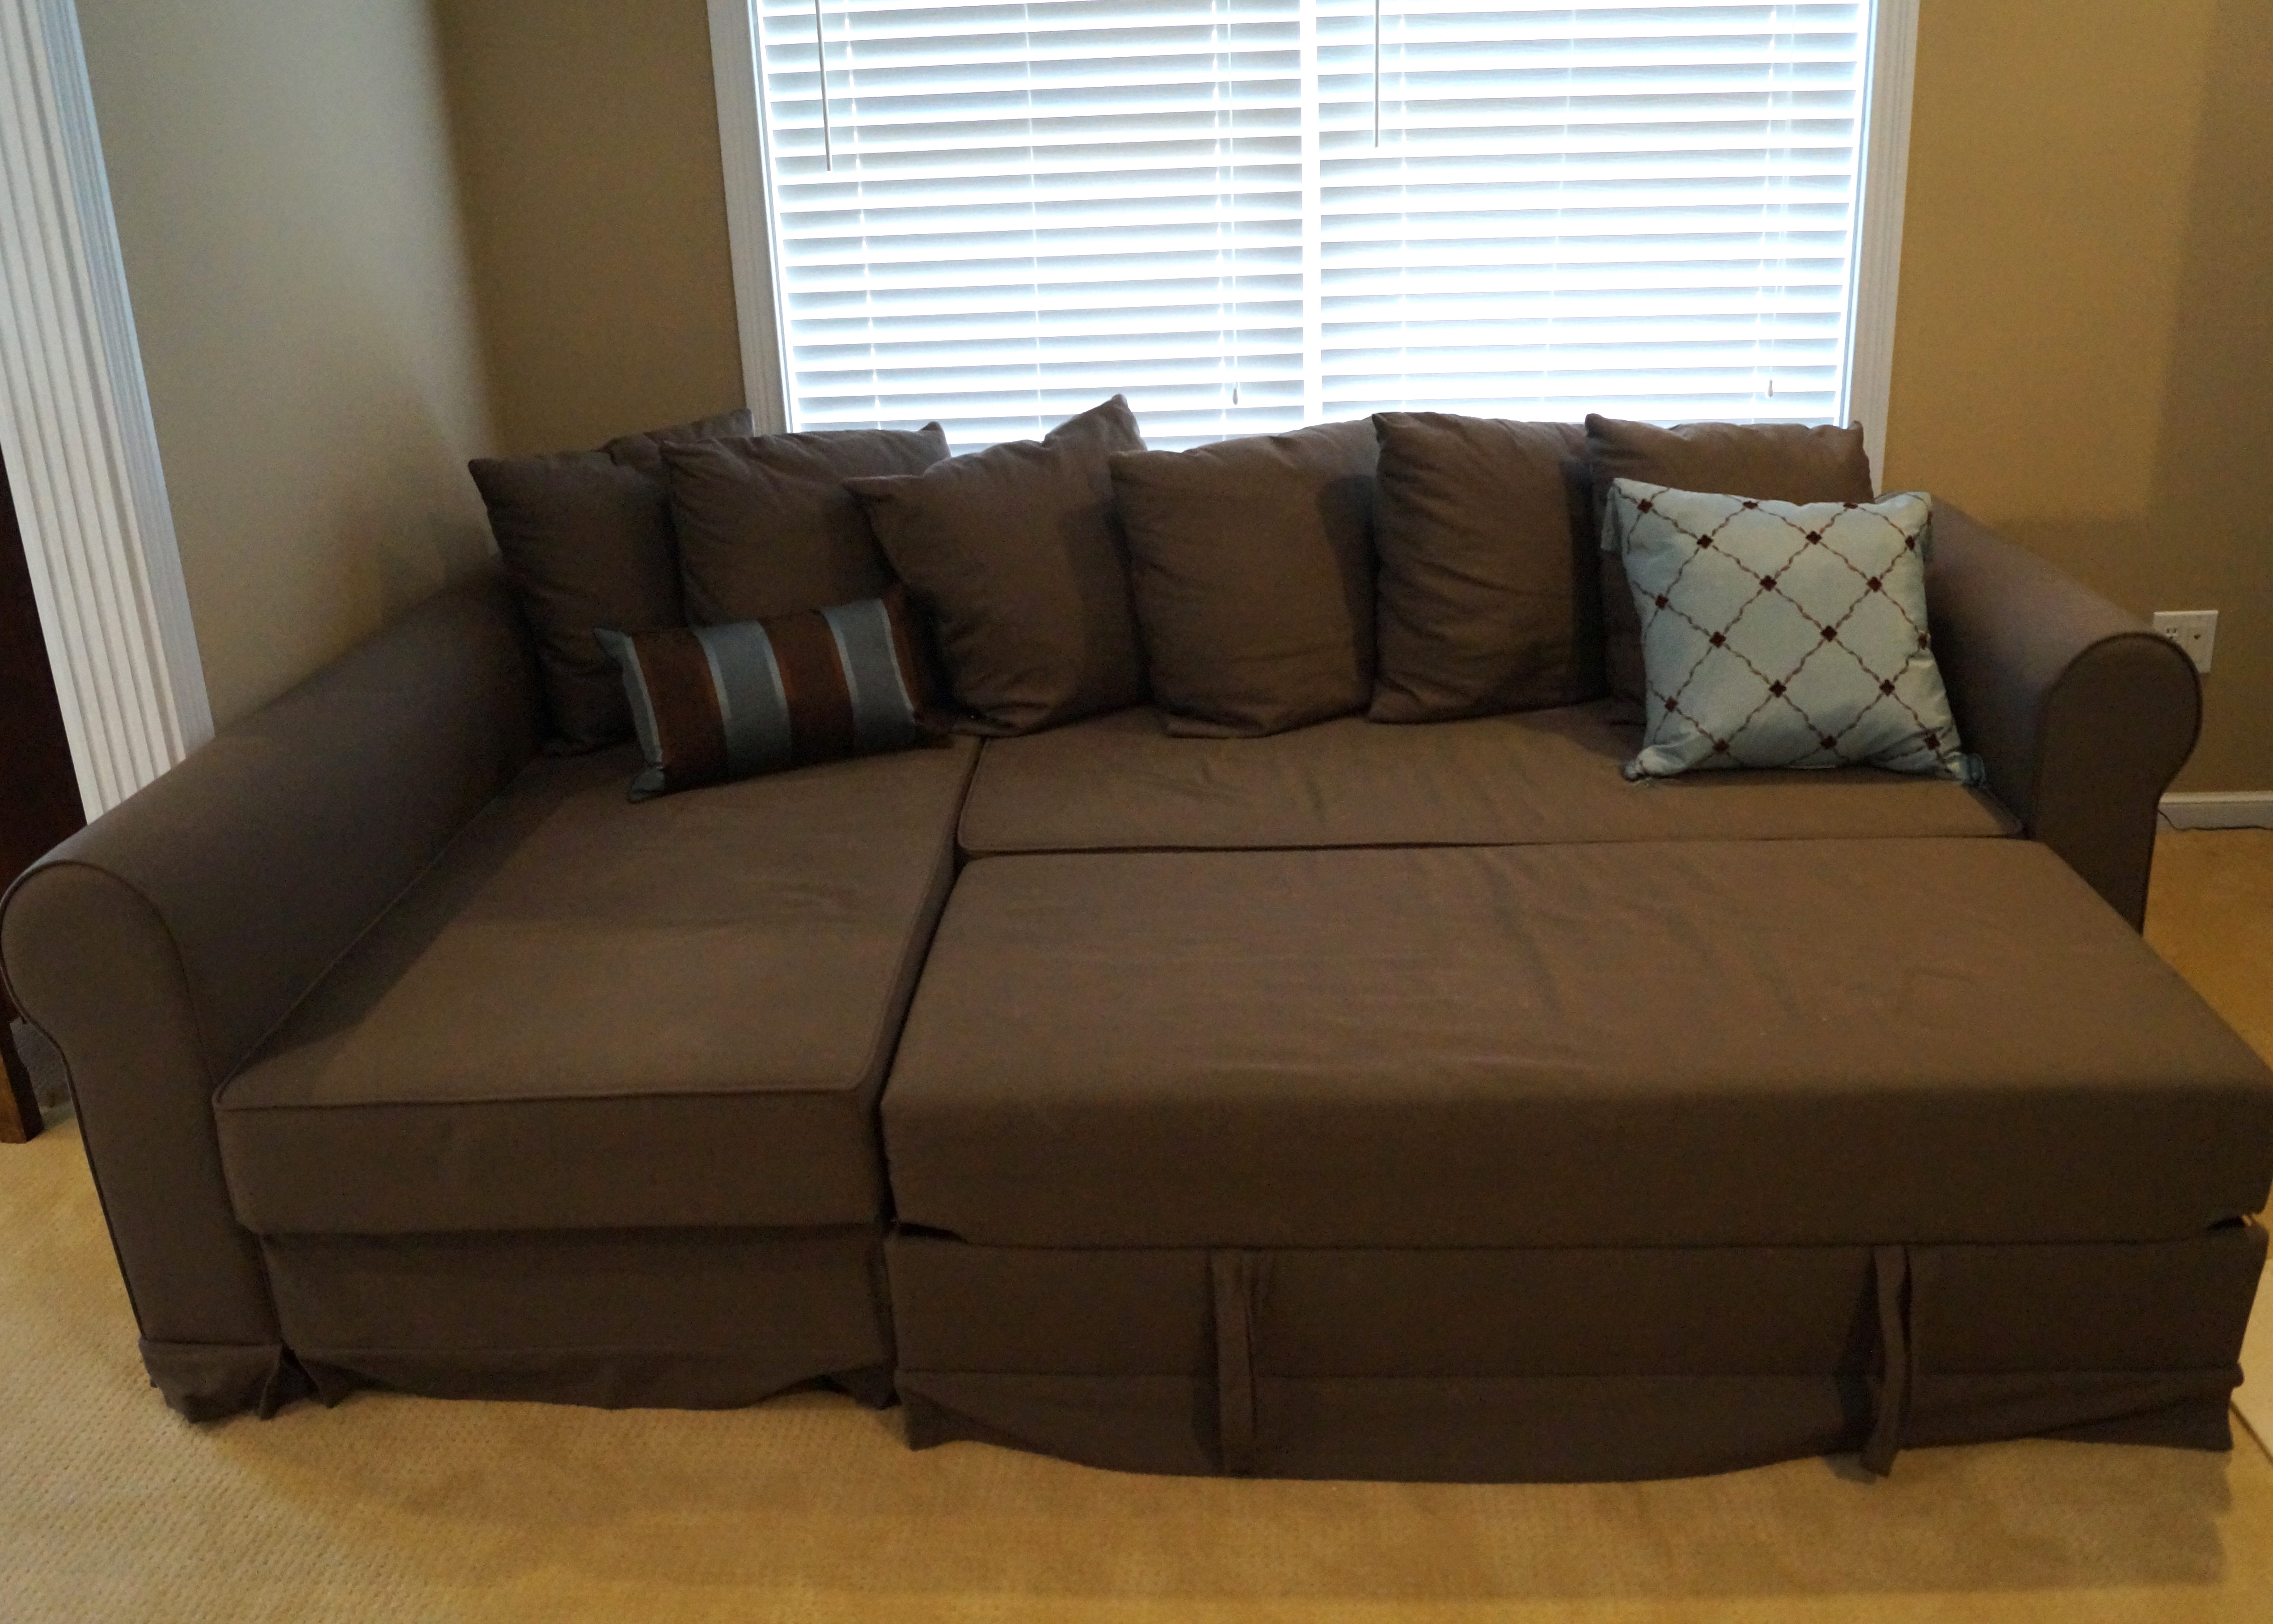 Superior IKEA Moheda Corner Storage Sofa Bed With Pull Out Ottoman ...